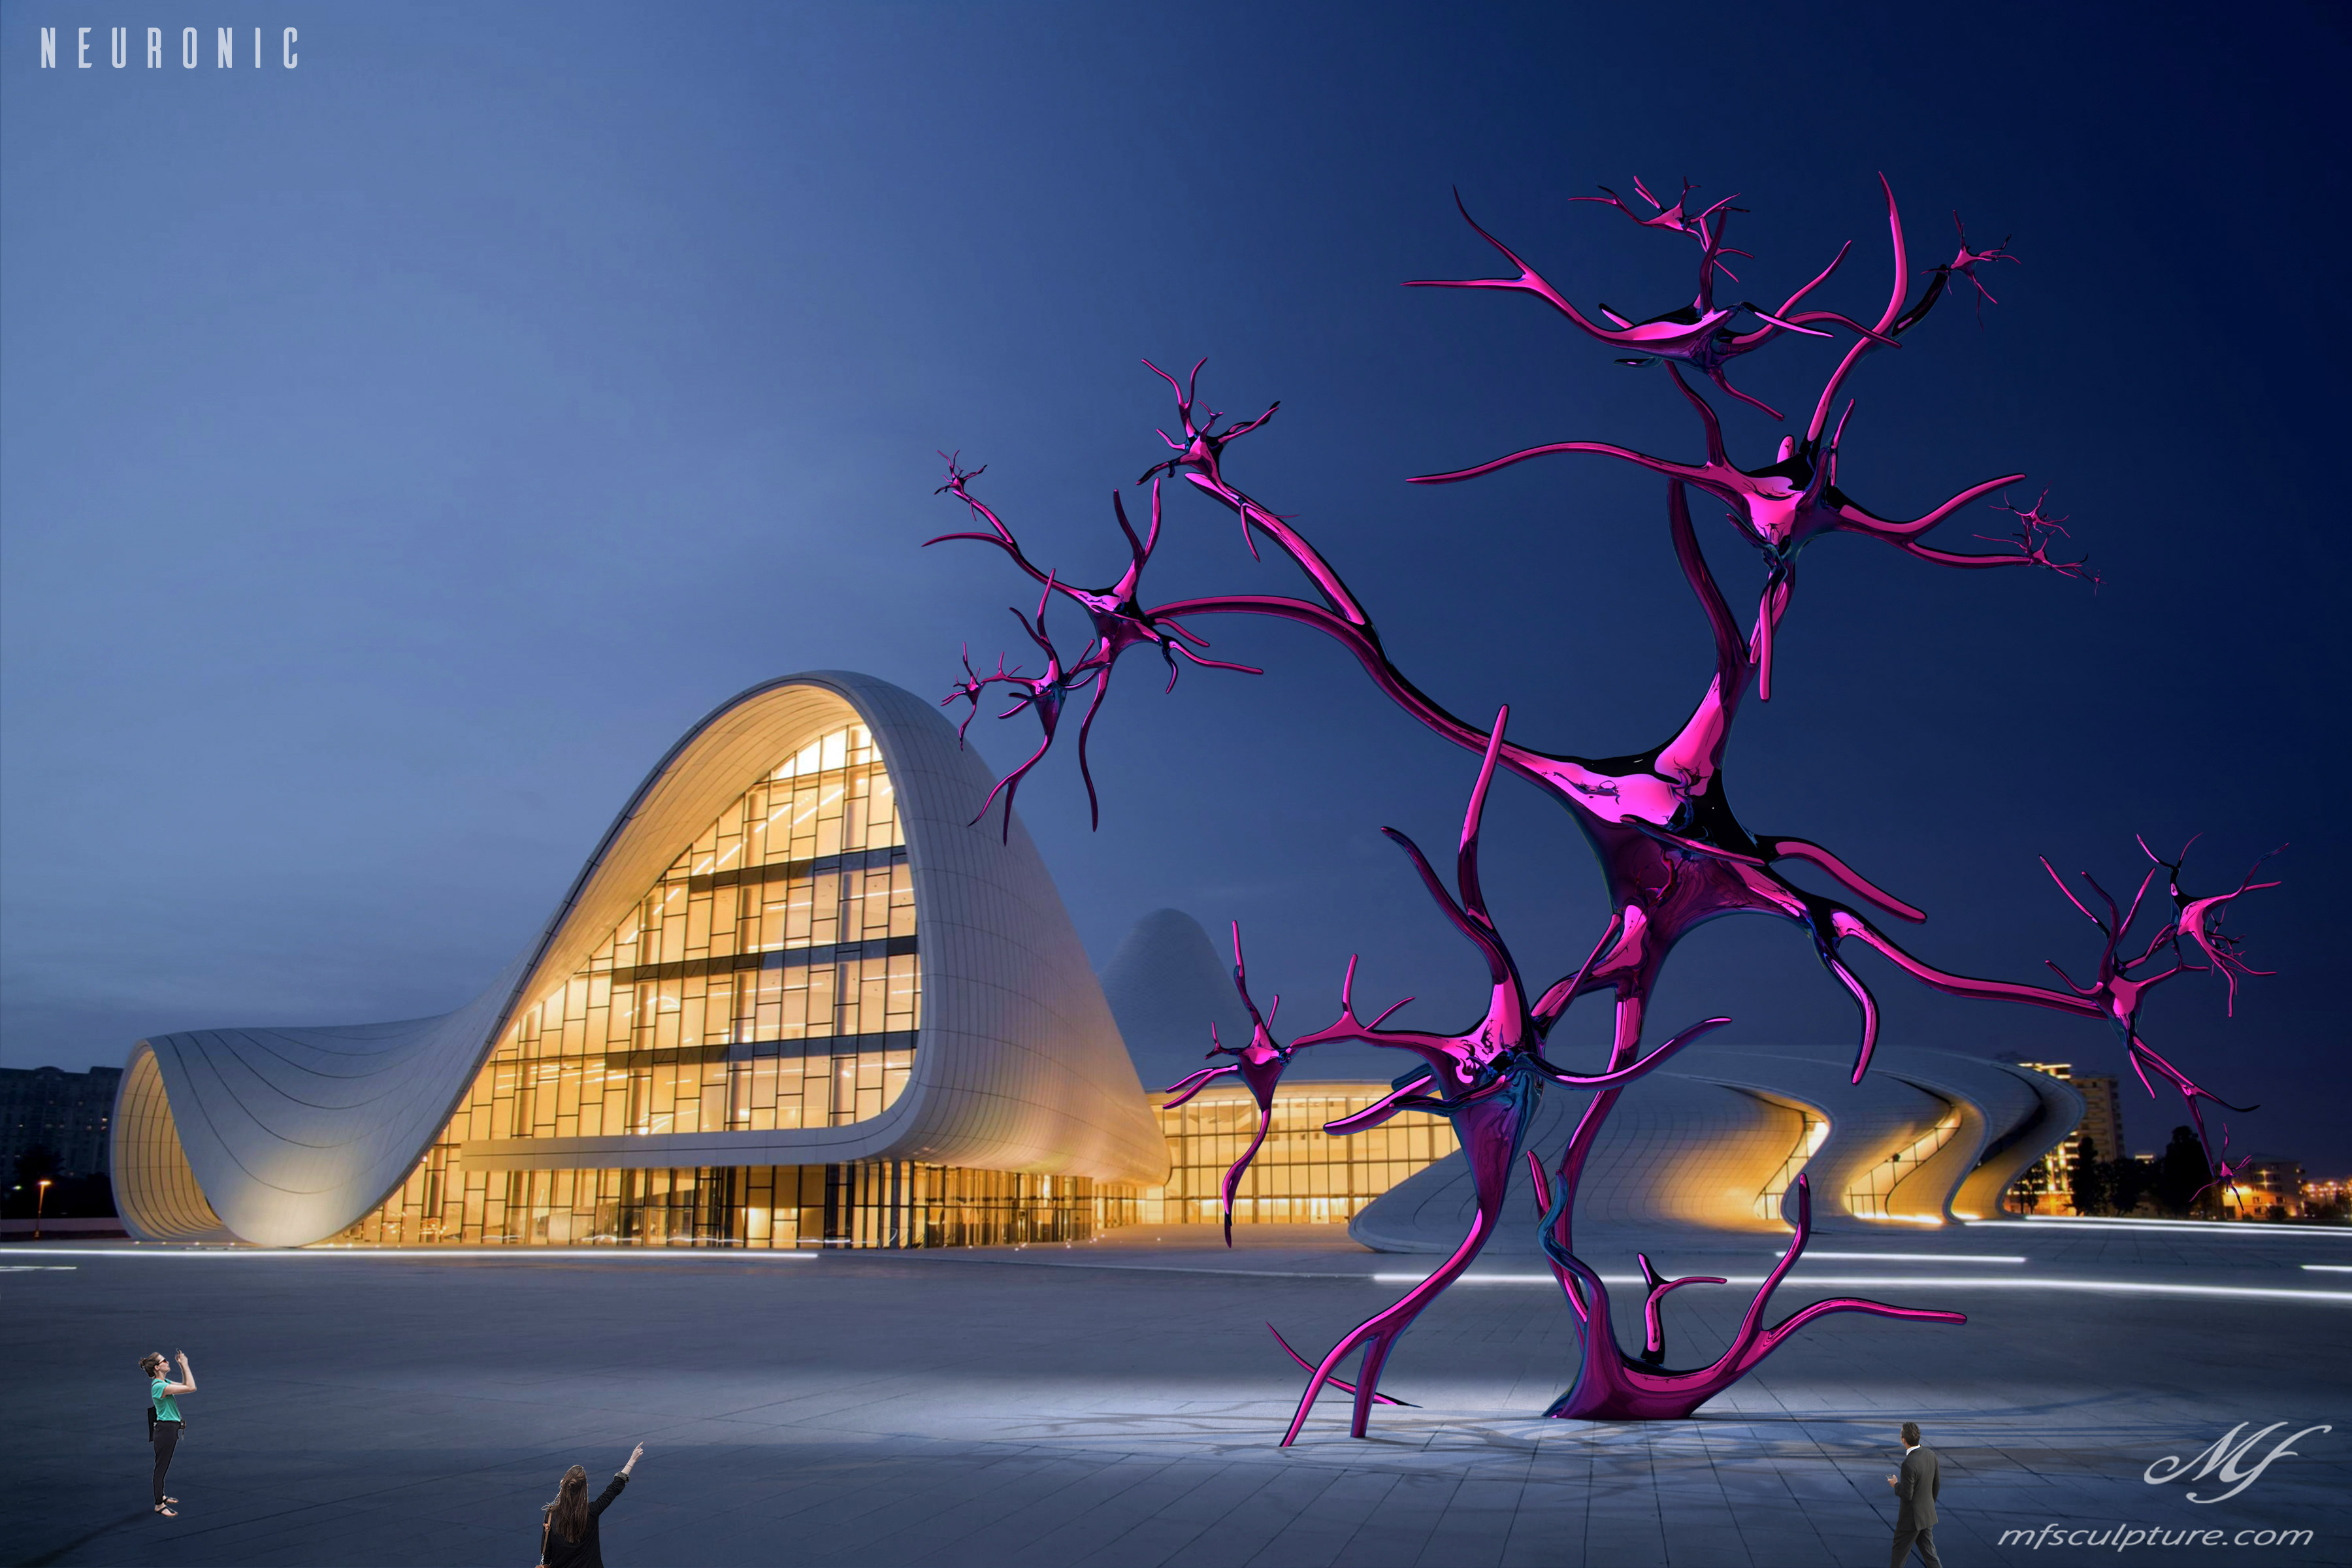 heydar aliyev center baku zaha hadid Modern Sculpture Neuronic Neuron Brain 3